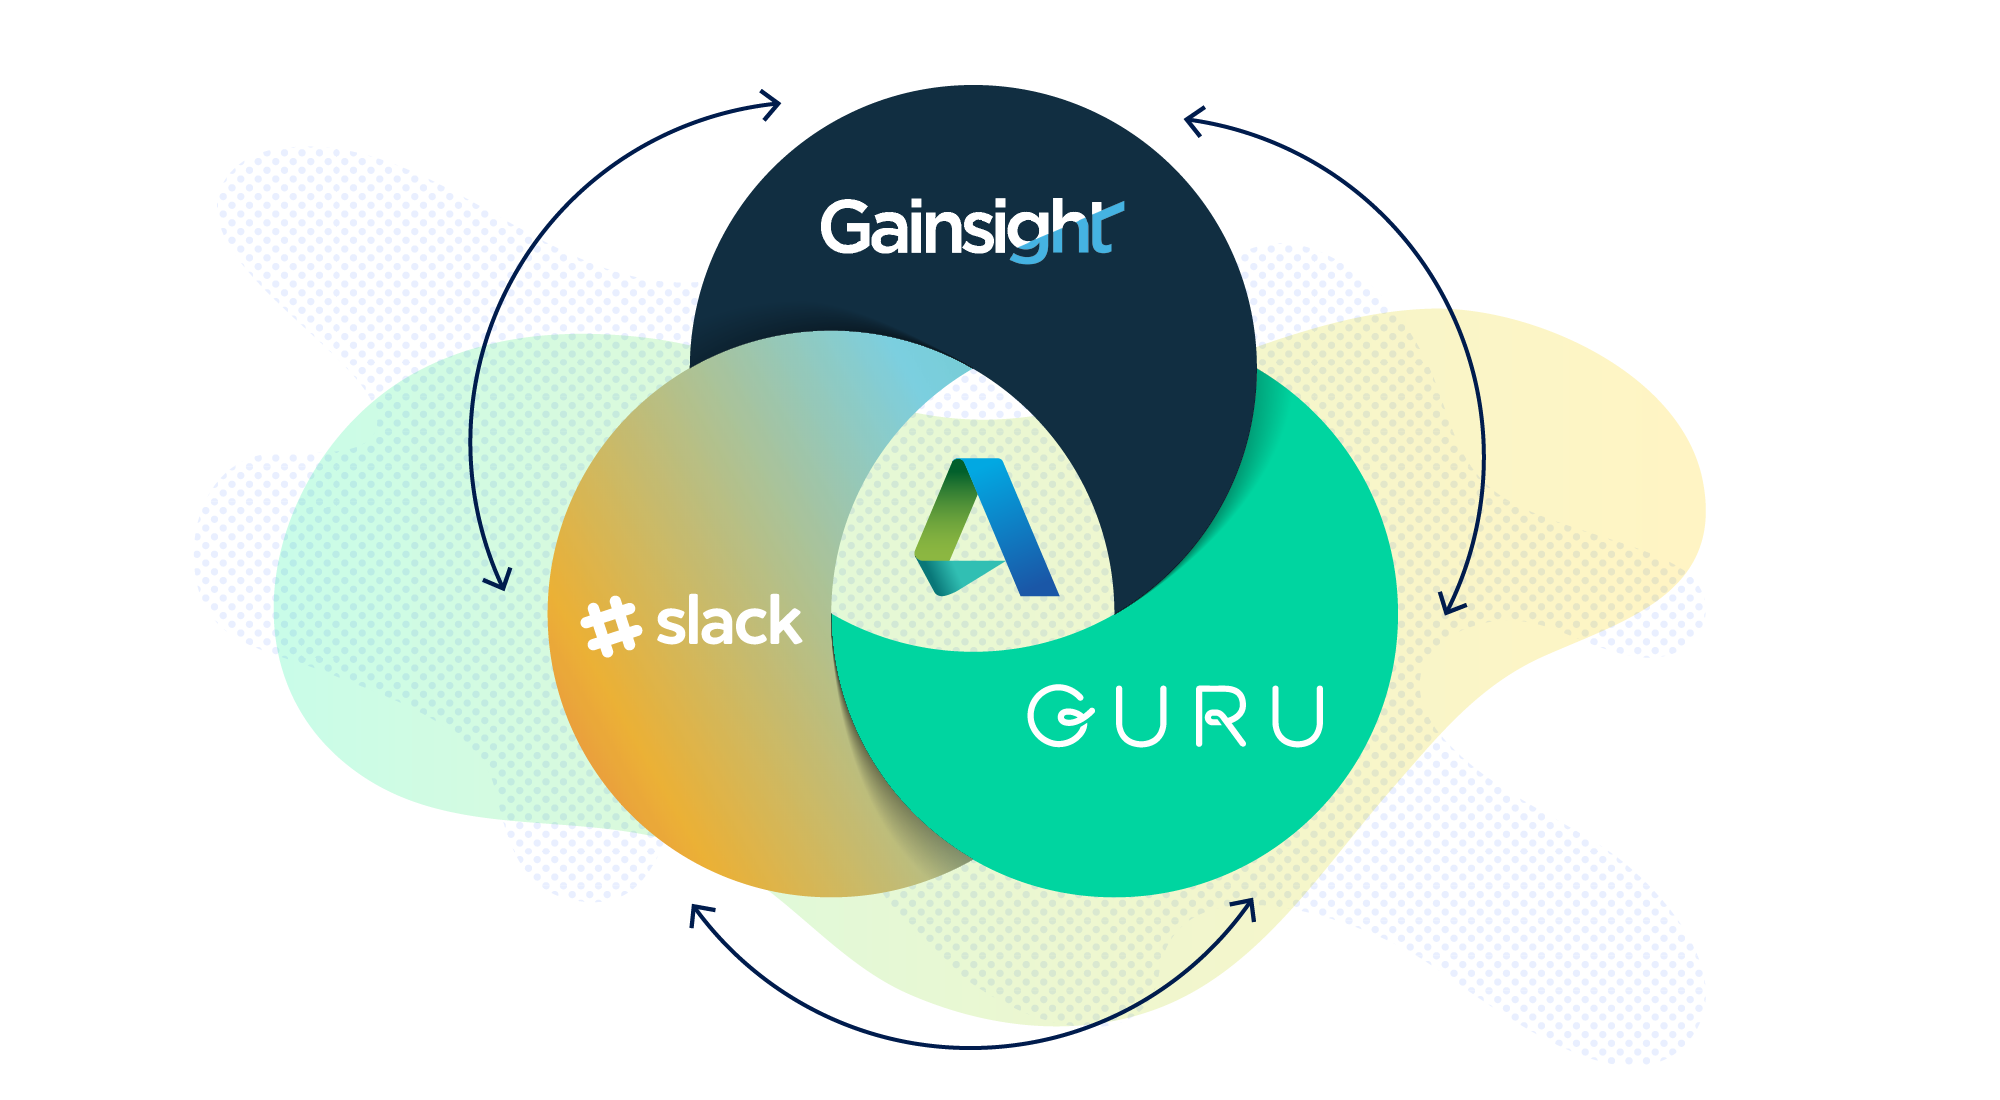 How Autodesk Works with Slack, Guru, and Gainsight